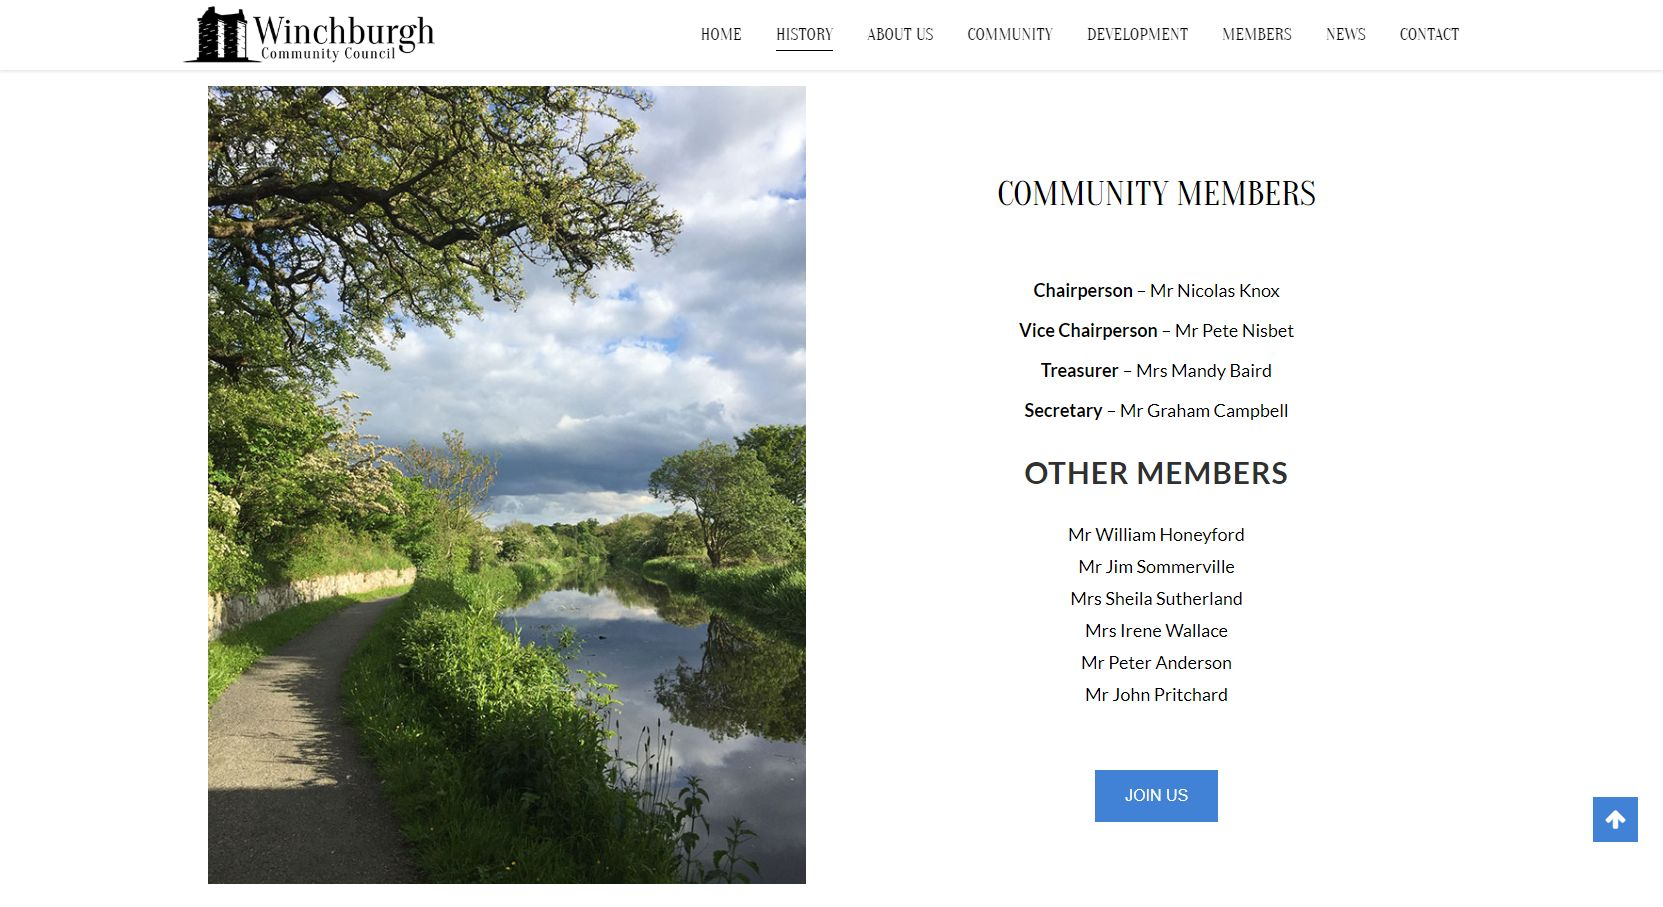 Winchburgh Community Council Development Members